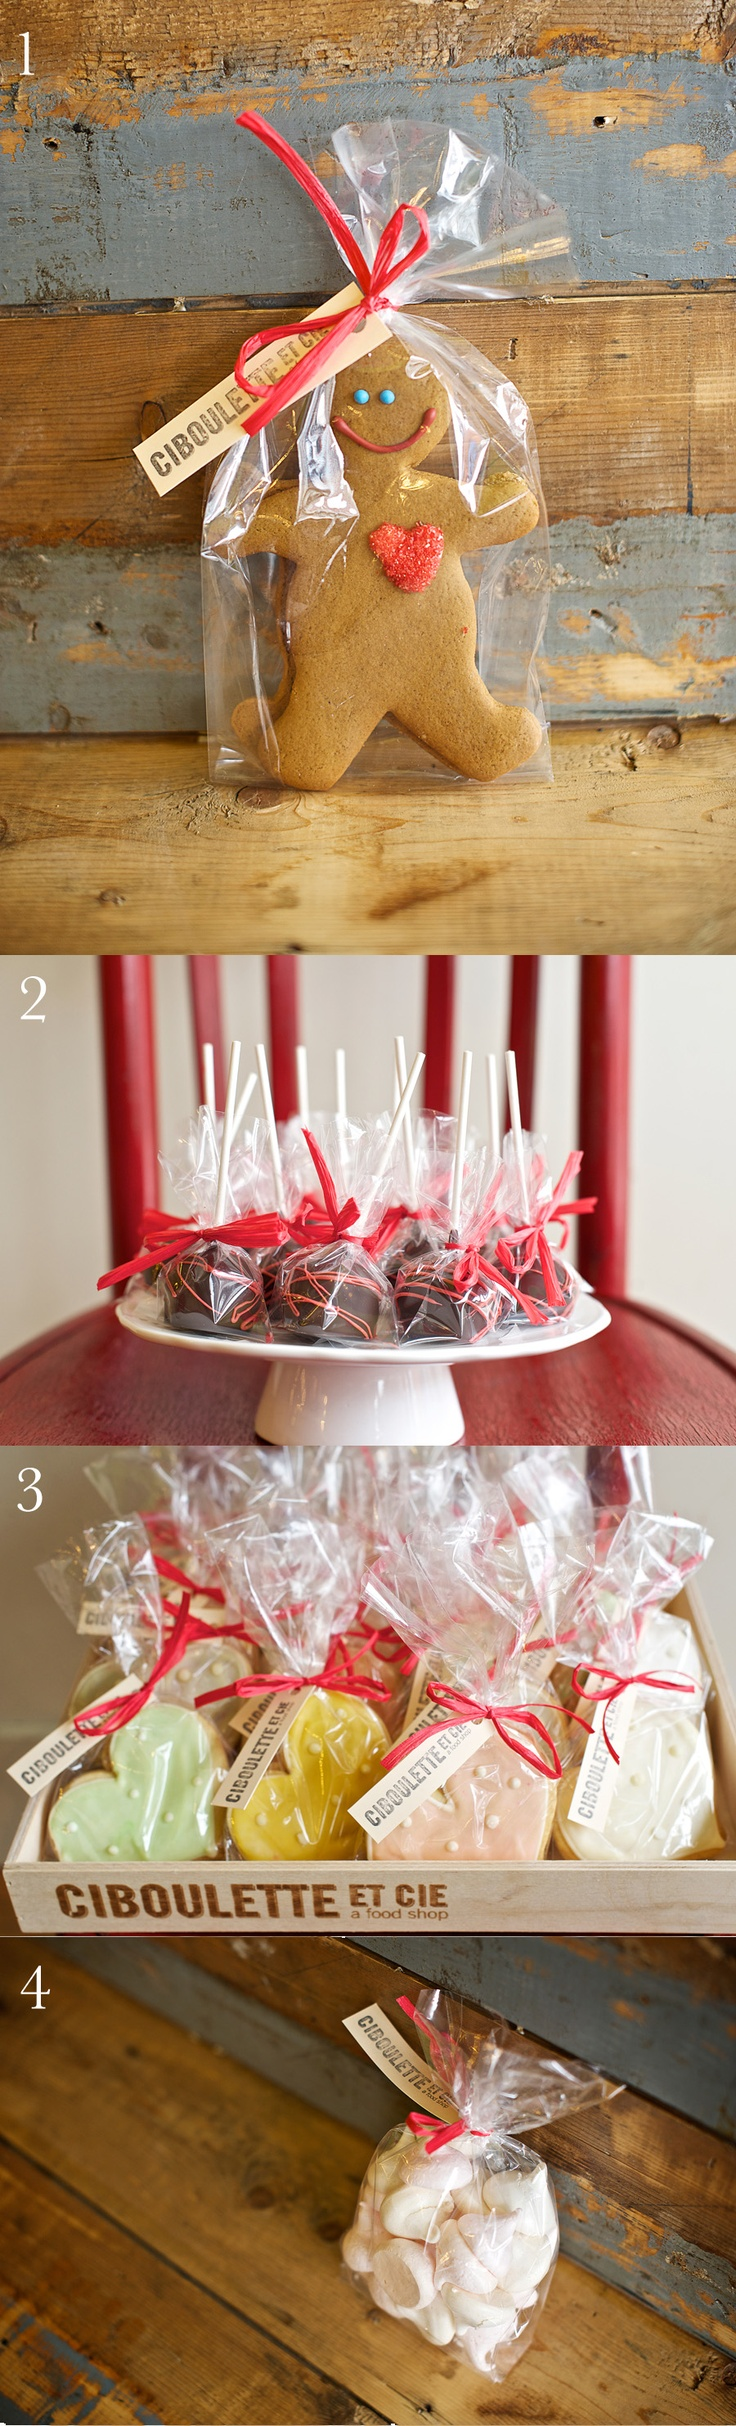 Sweets for the Sweet from Ciboulette et Cie in Midland Ontario. Gingerbread men, cake pops, handmade shortbread hearts, merangue kisses... happy Valentine's!